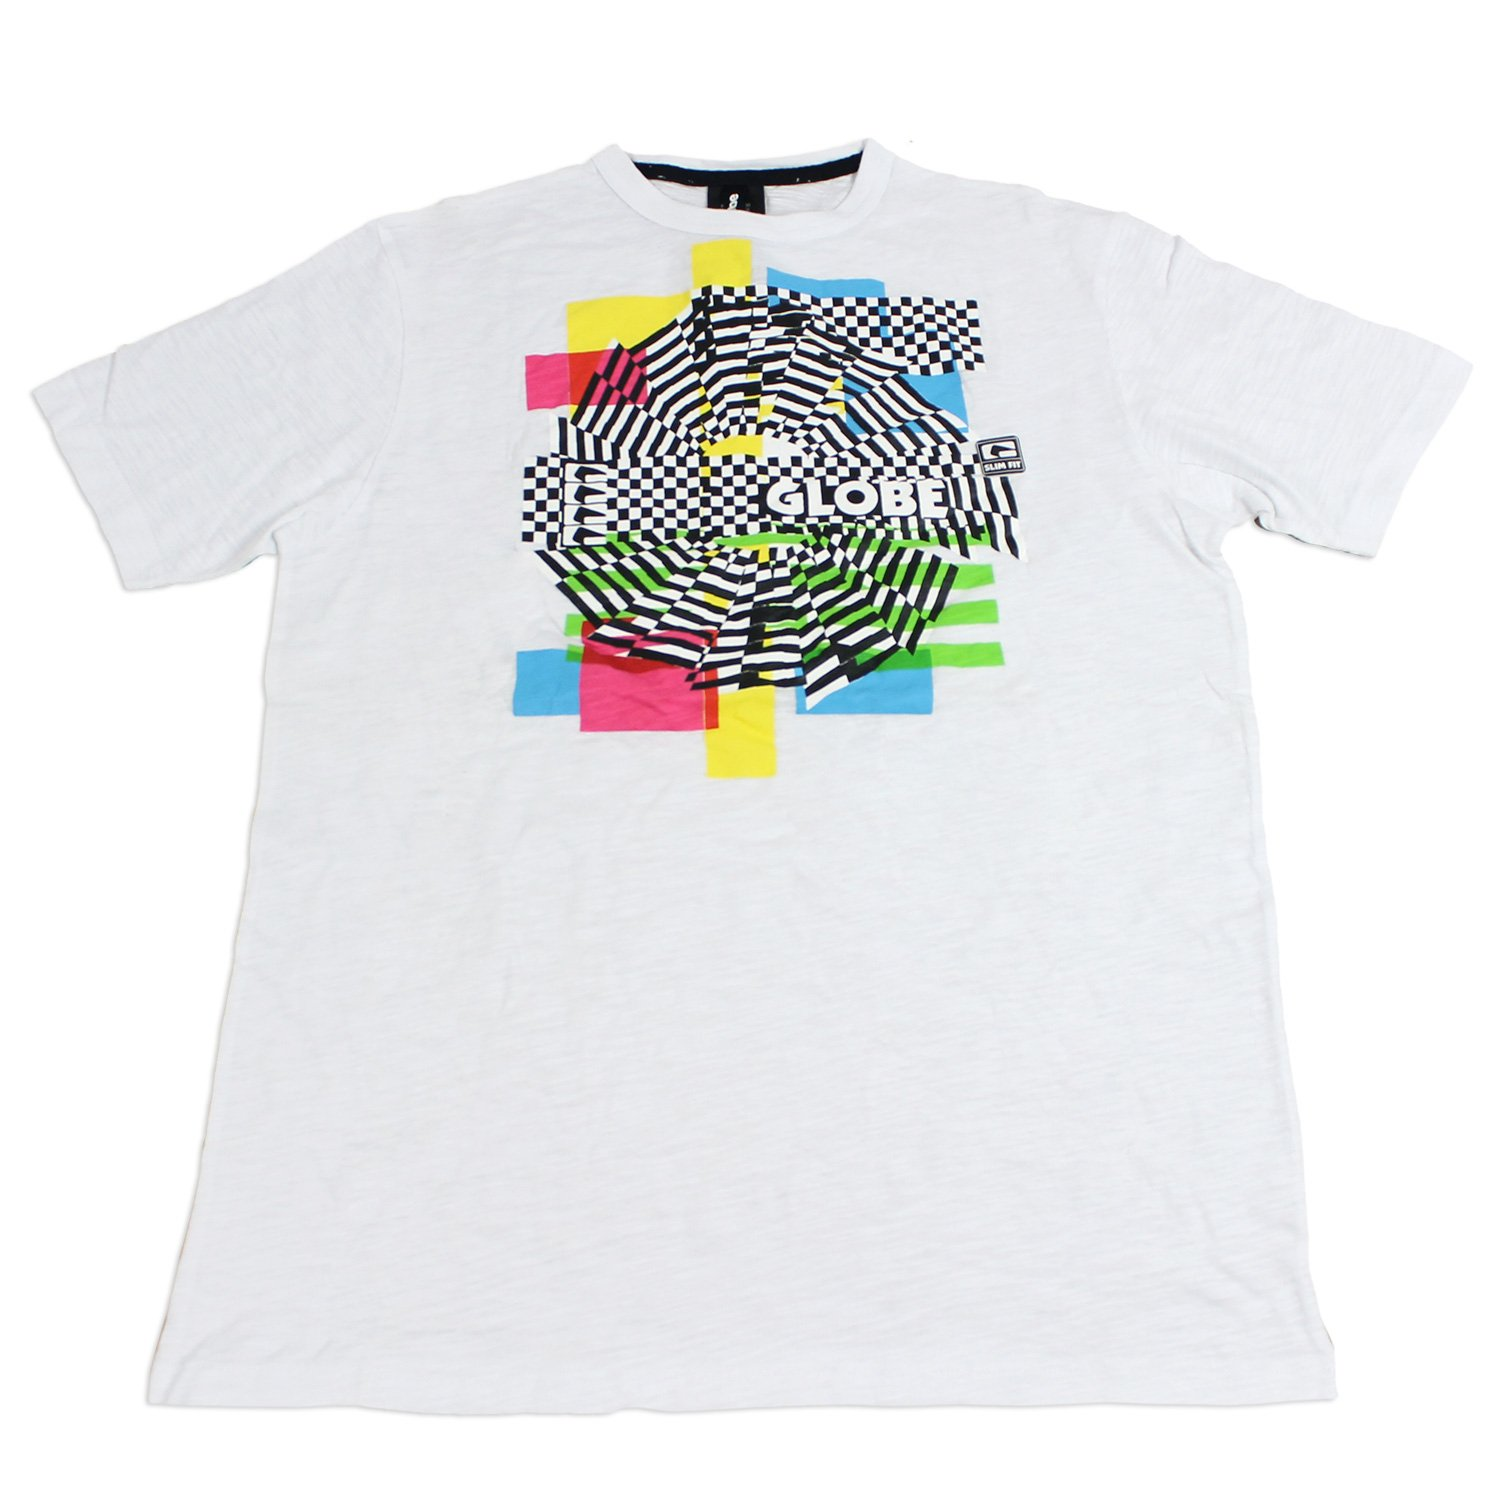 GLOBE Skate Shoes SHIRT CJ 80'S CUSTOM WHITE Sz MED